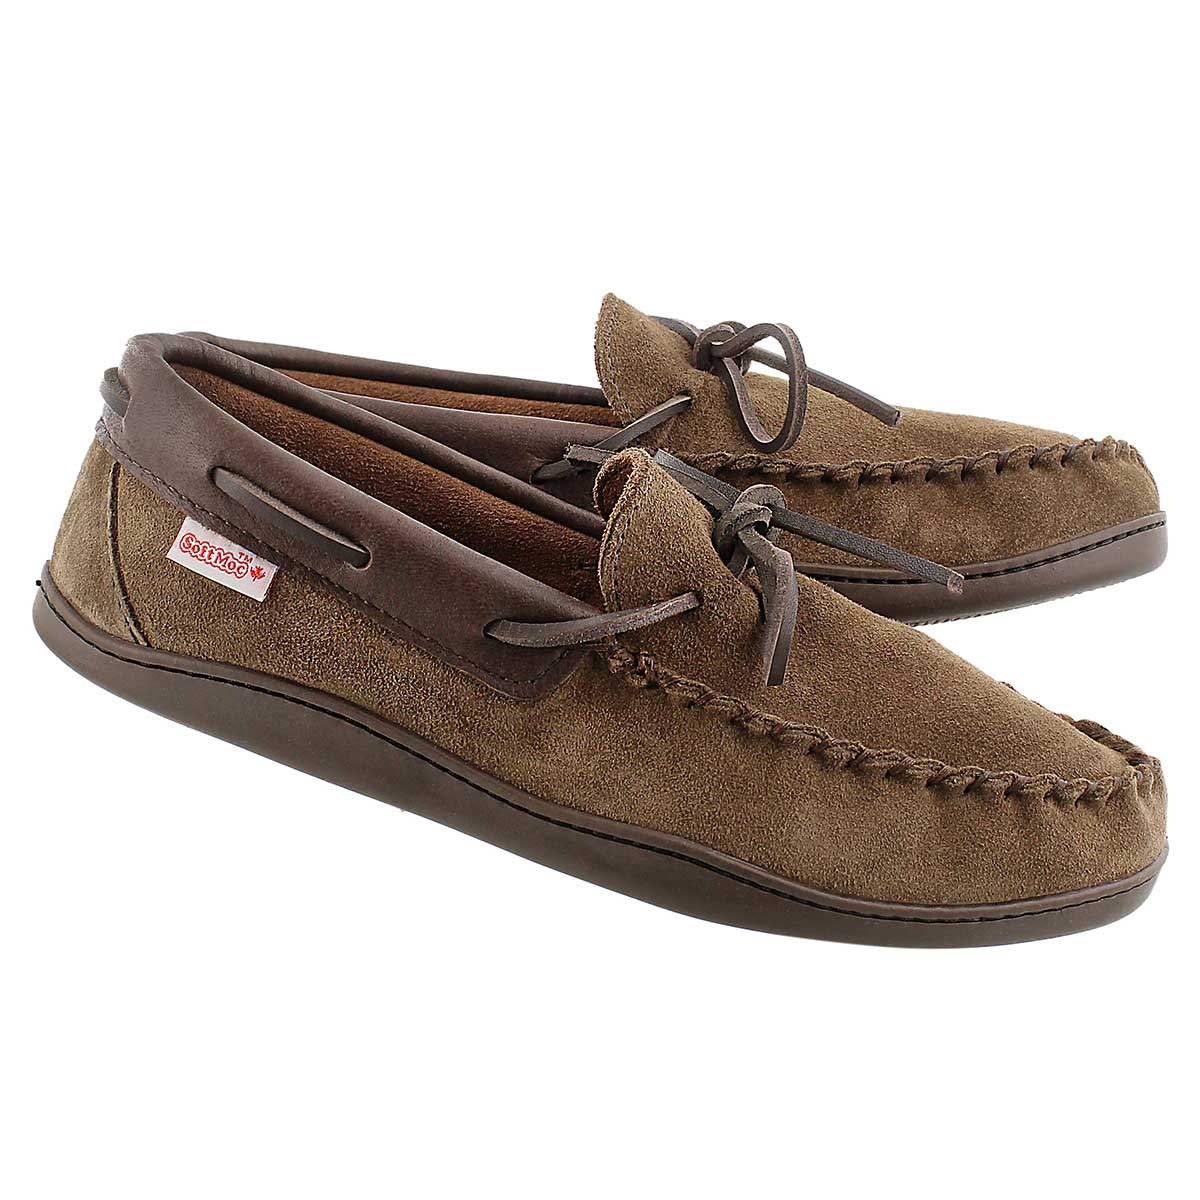 Mns smoke brown moccasin